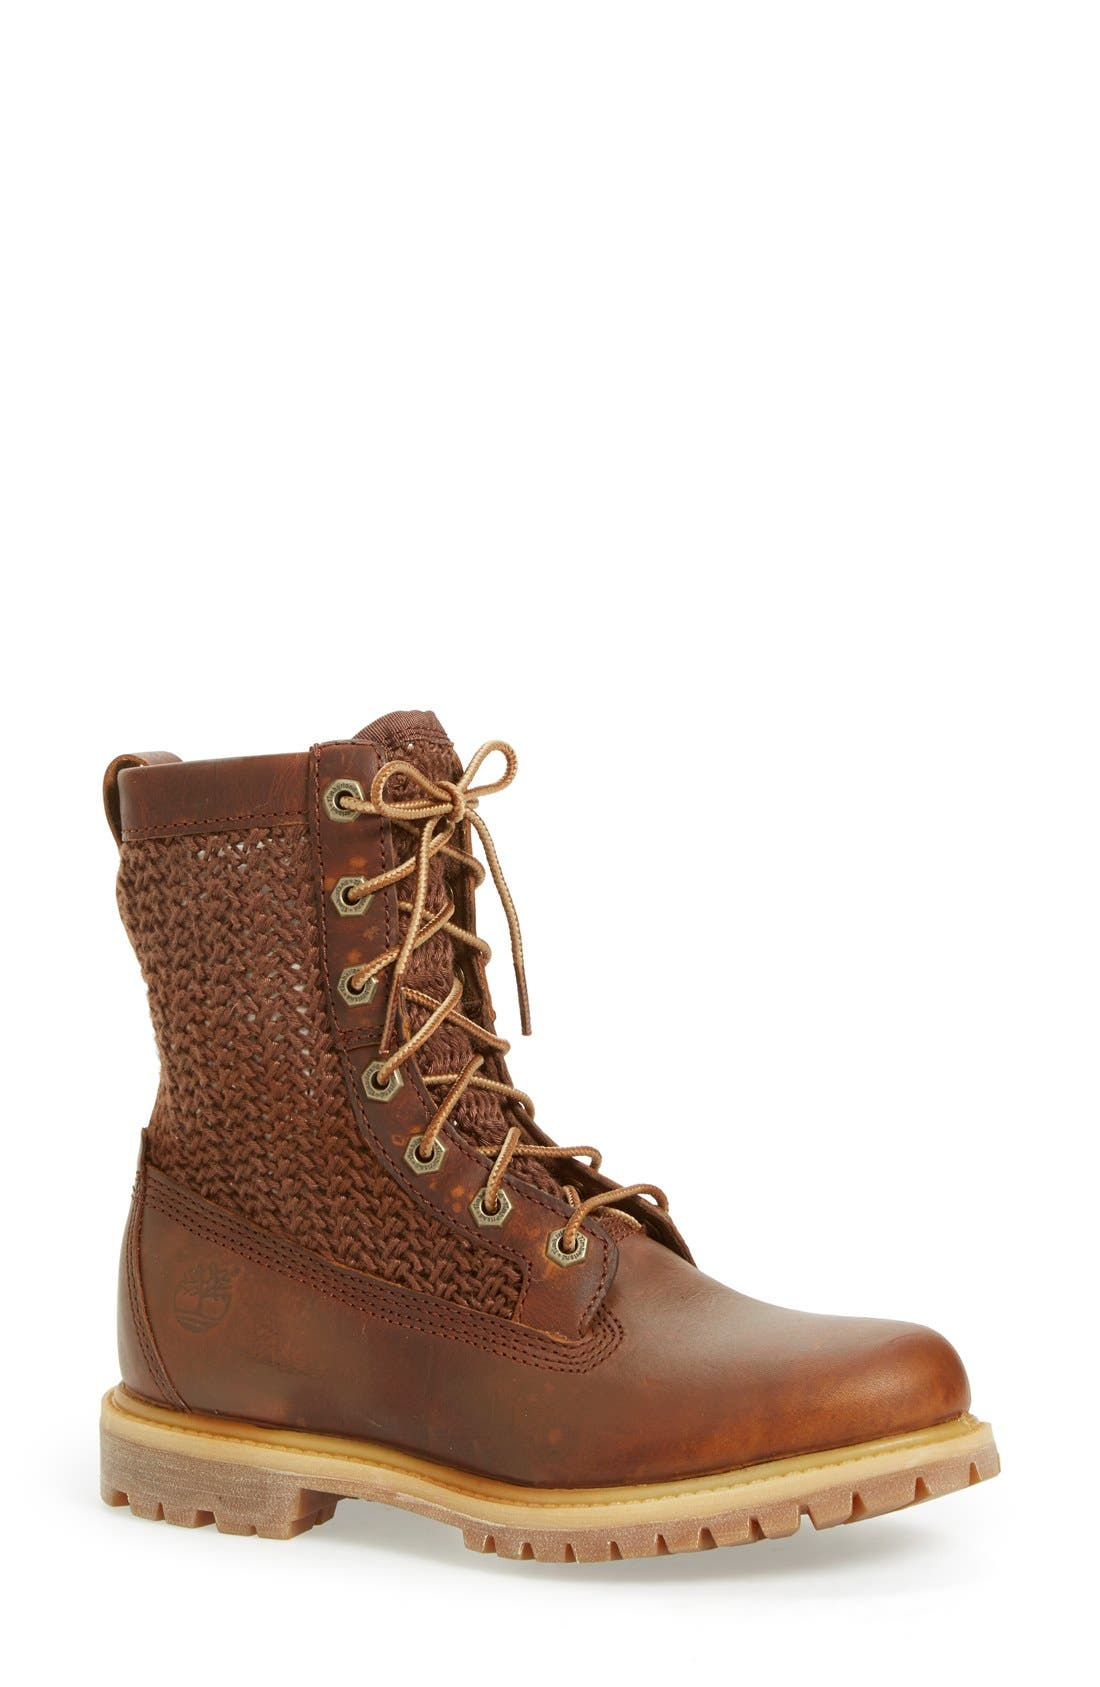 Alternate Image 1 Selected - Timberland 'Authentic' Lace-Up Boot (Women)